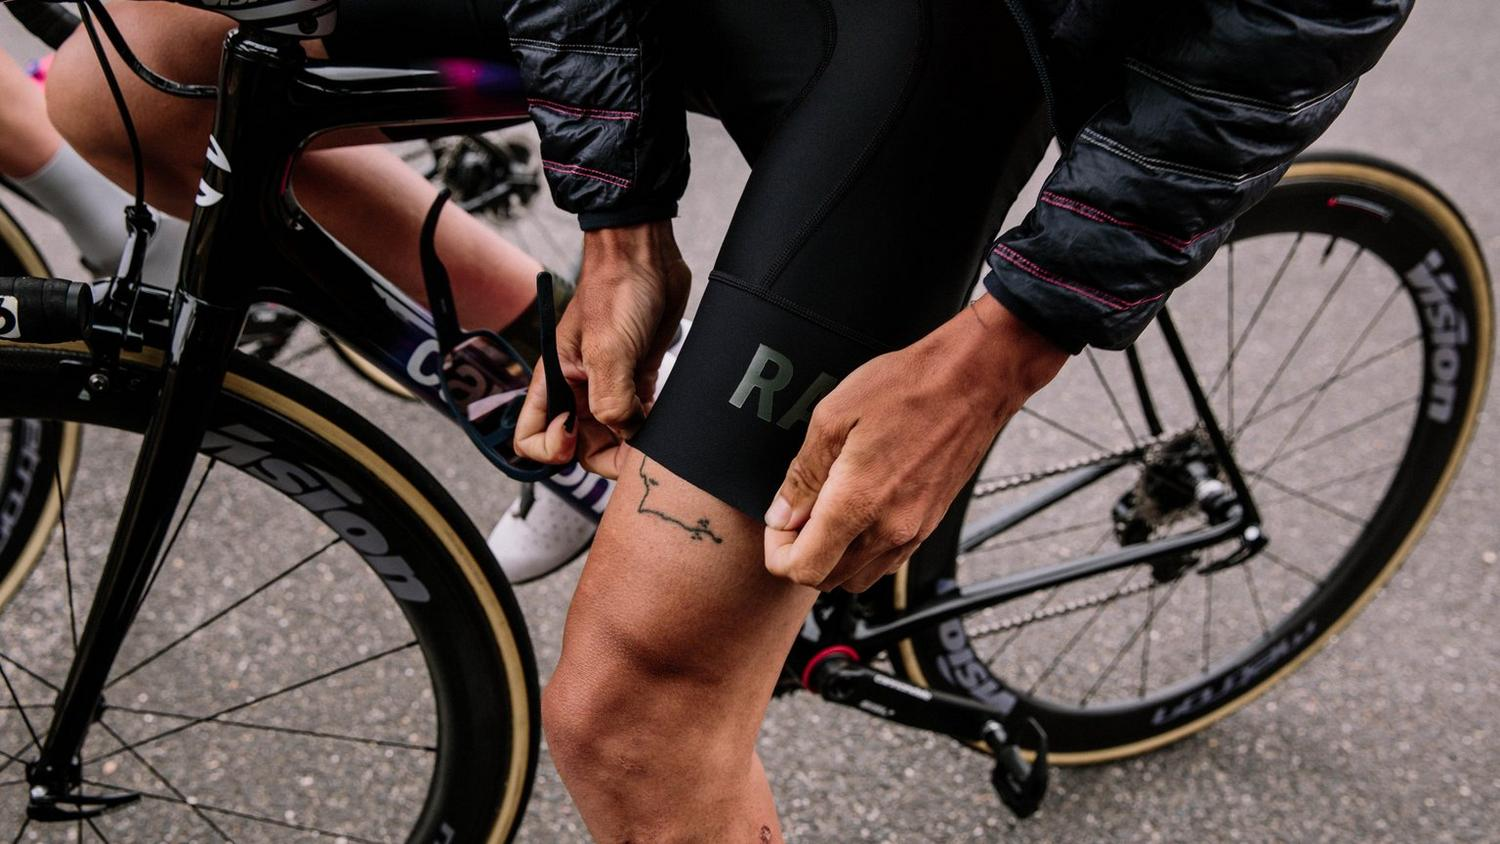 Men's Bib Shorts Guide 2018